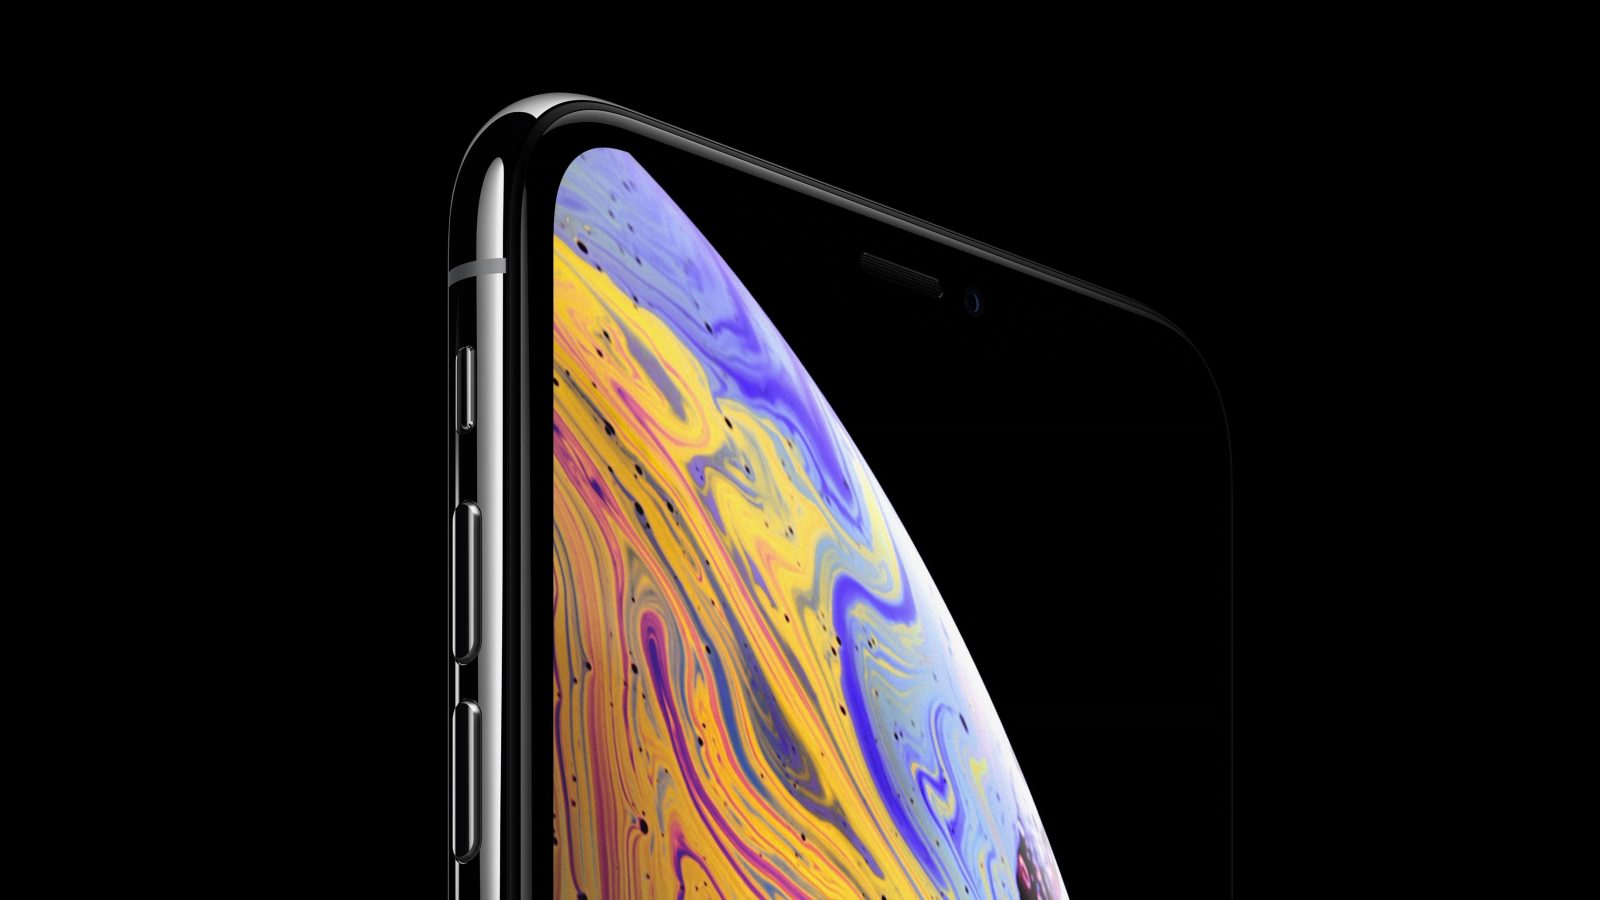 Download the new iPhone Xs and iPhone Xs Max wallpapers right here [Gallery]